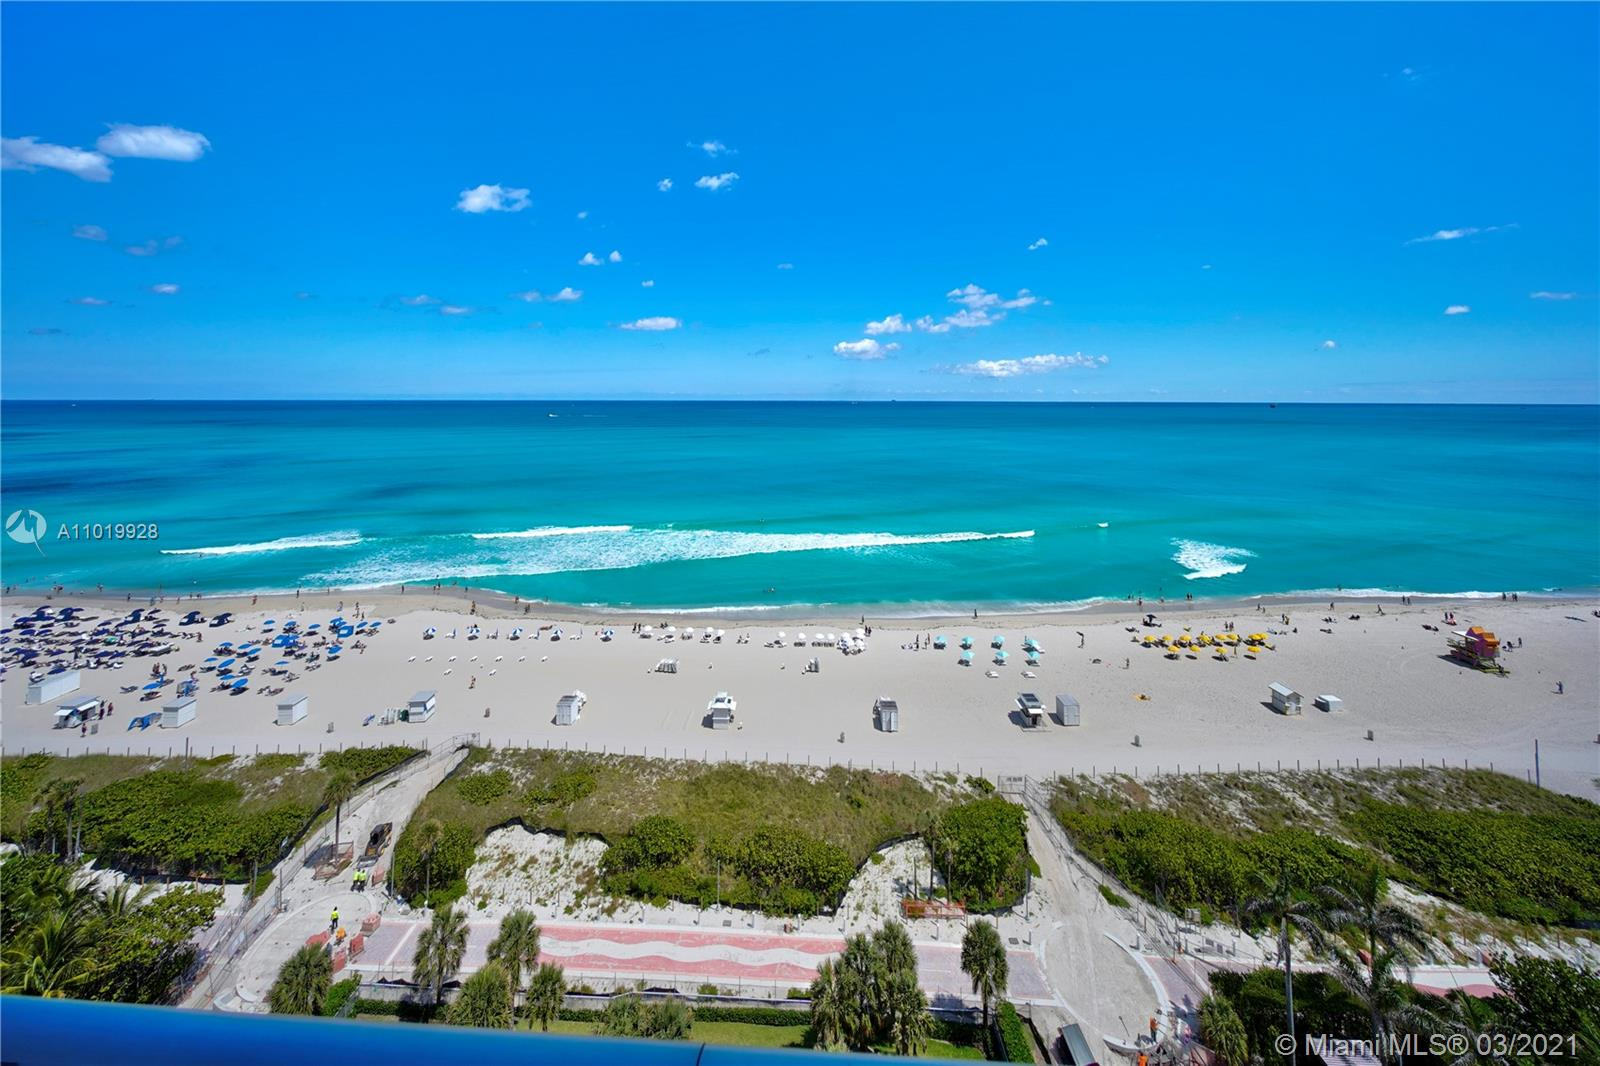 Rarely available High Floor at The Caribbean. Direct Ocean Views! Takes your breath away. The 14th Floor 3BR/2.5BA condo with over 800 sq ft. wrap-around balcony is a must see. Floor to ceiling windows throughout. European Kitchen w/Miele appliances, sub-zero, gas range. Strong focus on clean lines with white flooring throughout. Private & Secure living. Building offers Beach and Pool Service, 24 Hr Staff, Gym, Private wine cellar & humidor. Located in Miami Beach Faena District. The Caribbean is Beachfront, with the Miami Beach Boardwalk in your backyard. Nearby hot spots include Fontainebleau, Soho Beach House, Faena and Edition.